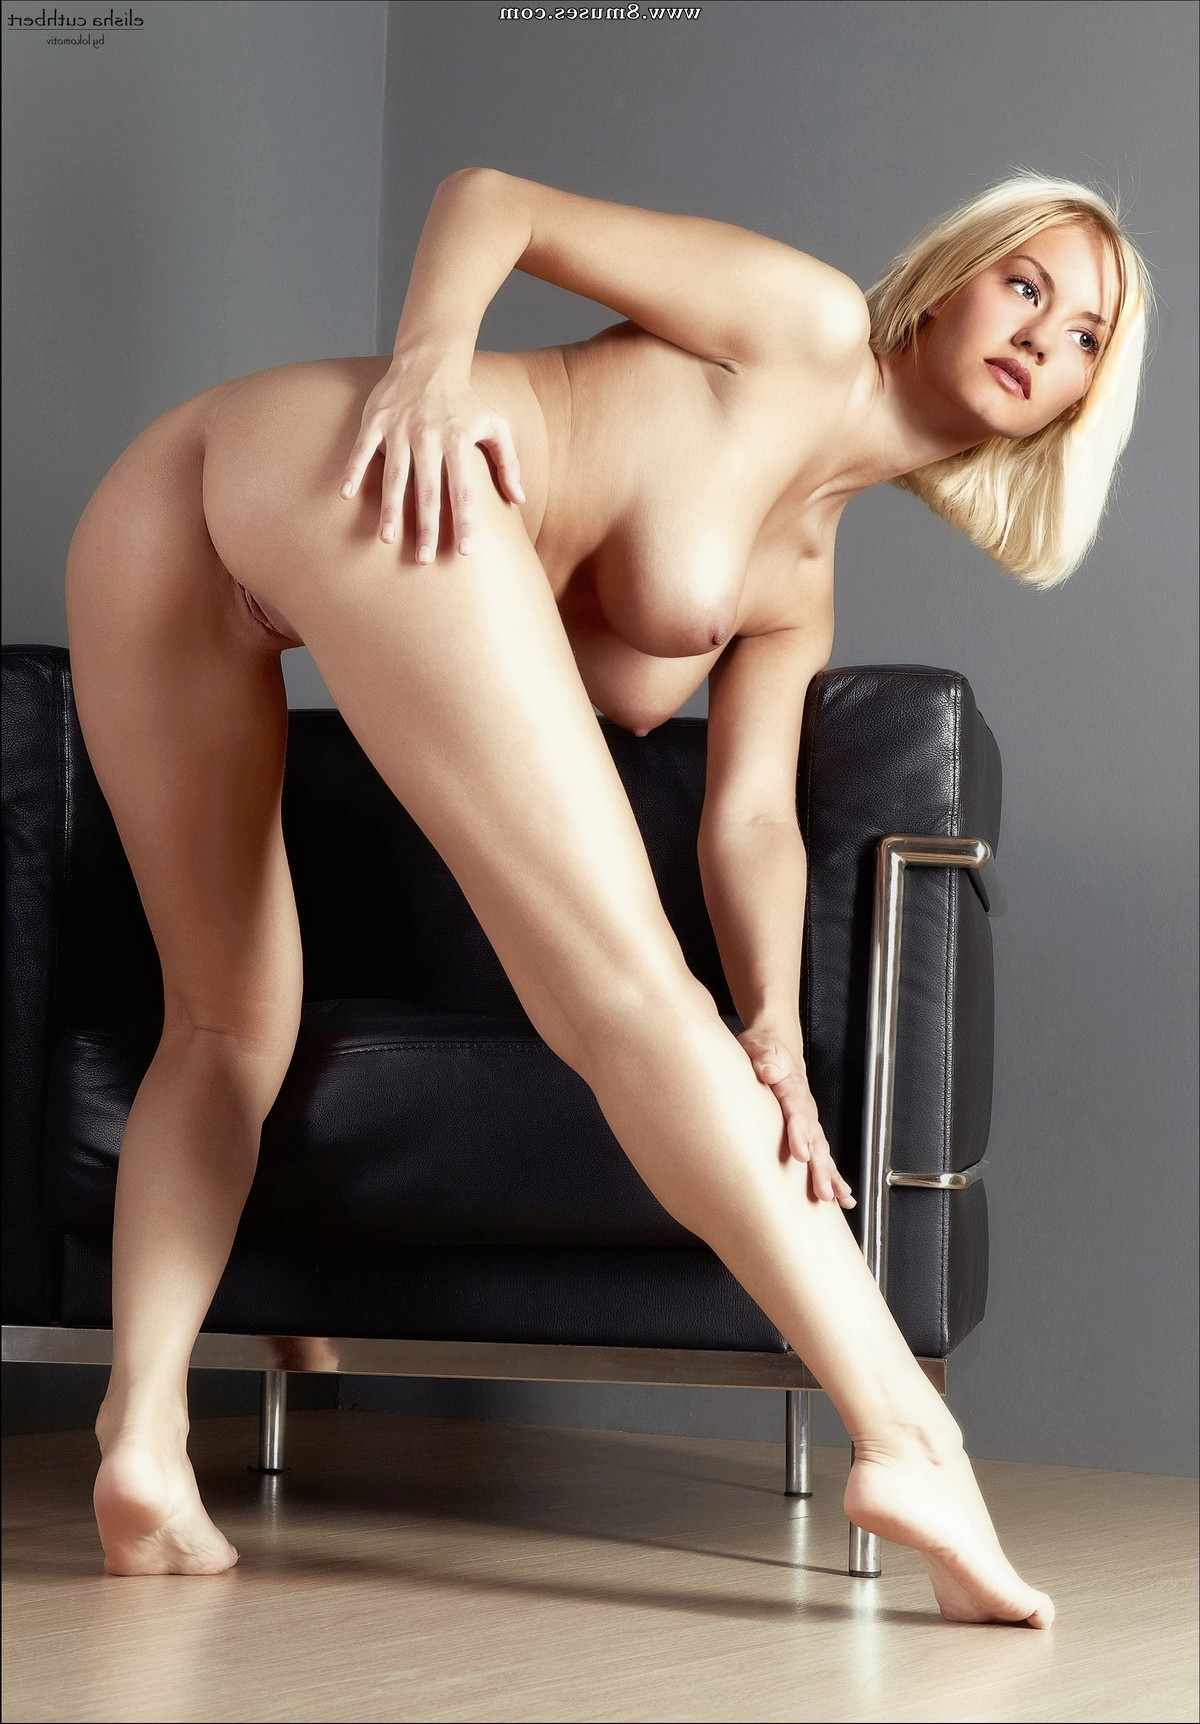 Fake-Celebrities-Sex-Pictures/Elisha-Cuthbert Elisha_Cuthbert__8muses_-_Sex_and_Porn_Comics_264.jpg